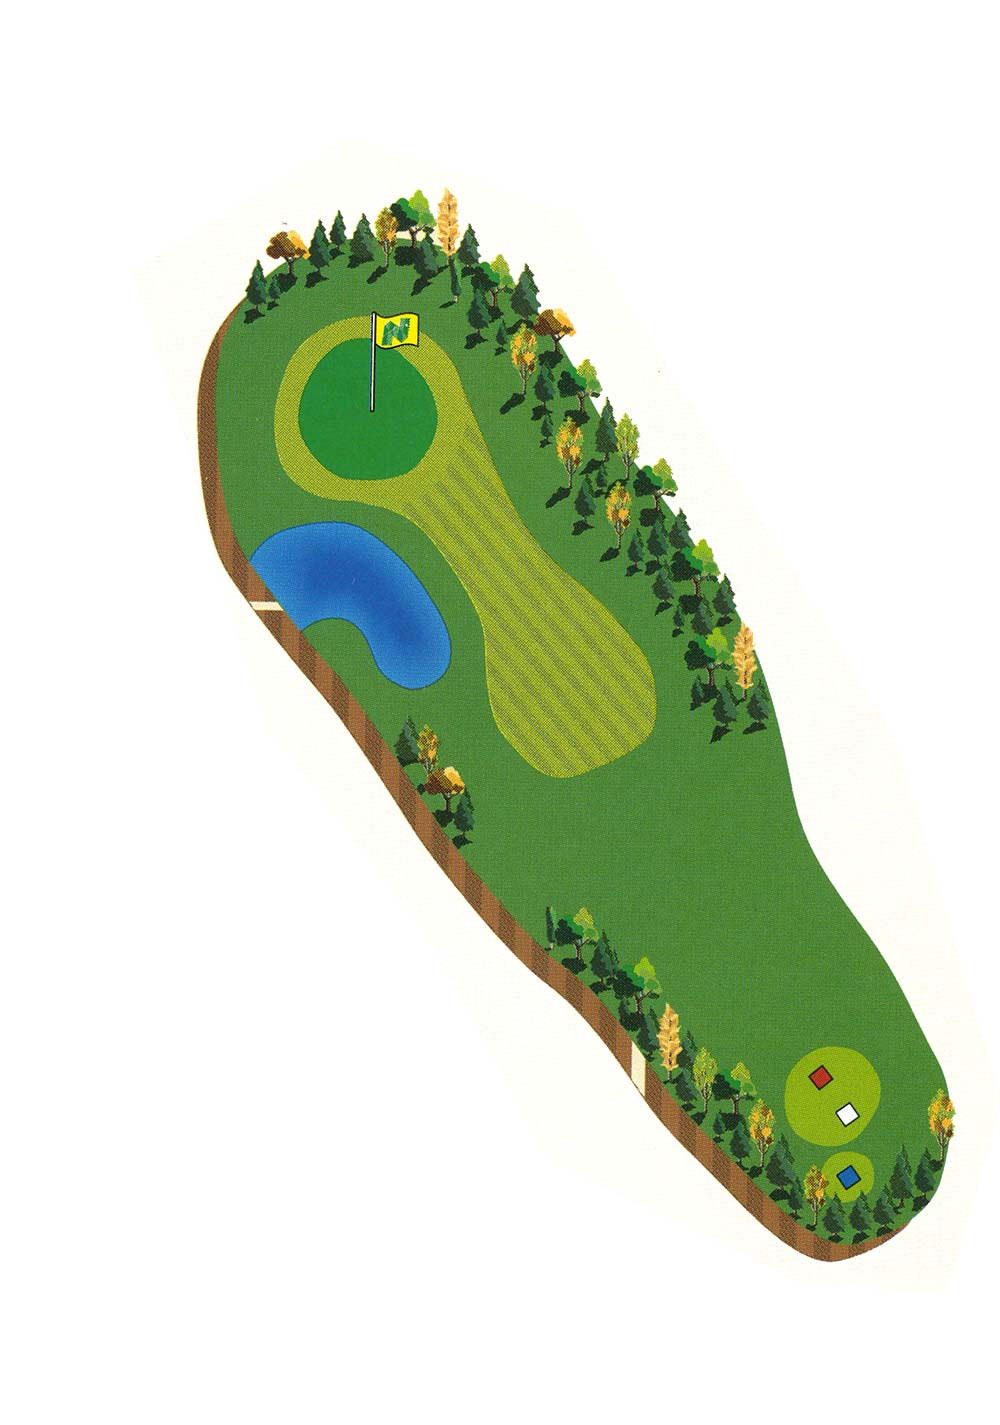 Course Description - Hole 12